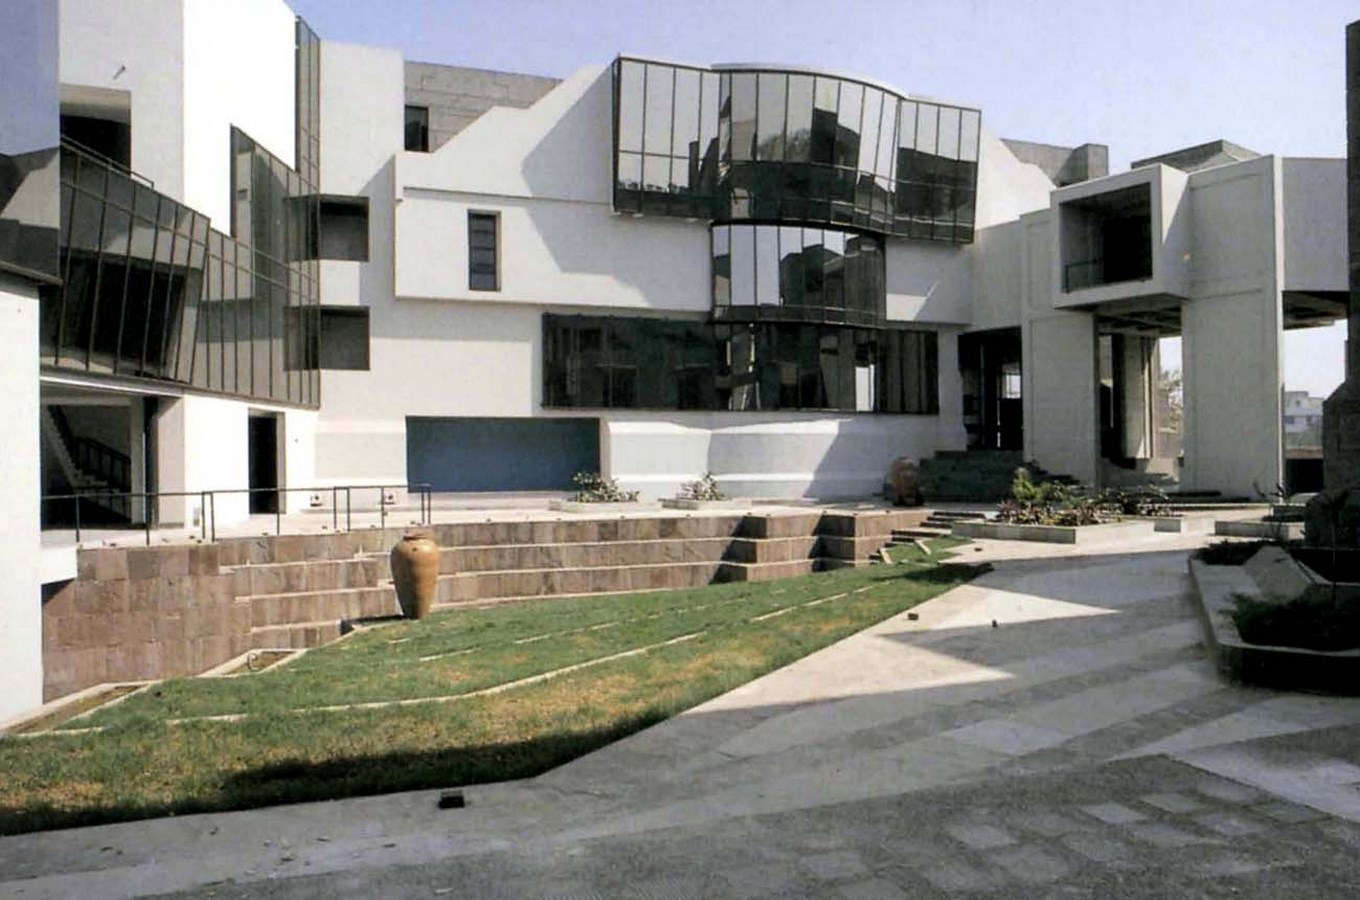 View of the exterior - National Institute of Fashion Technology